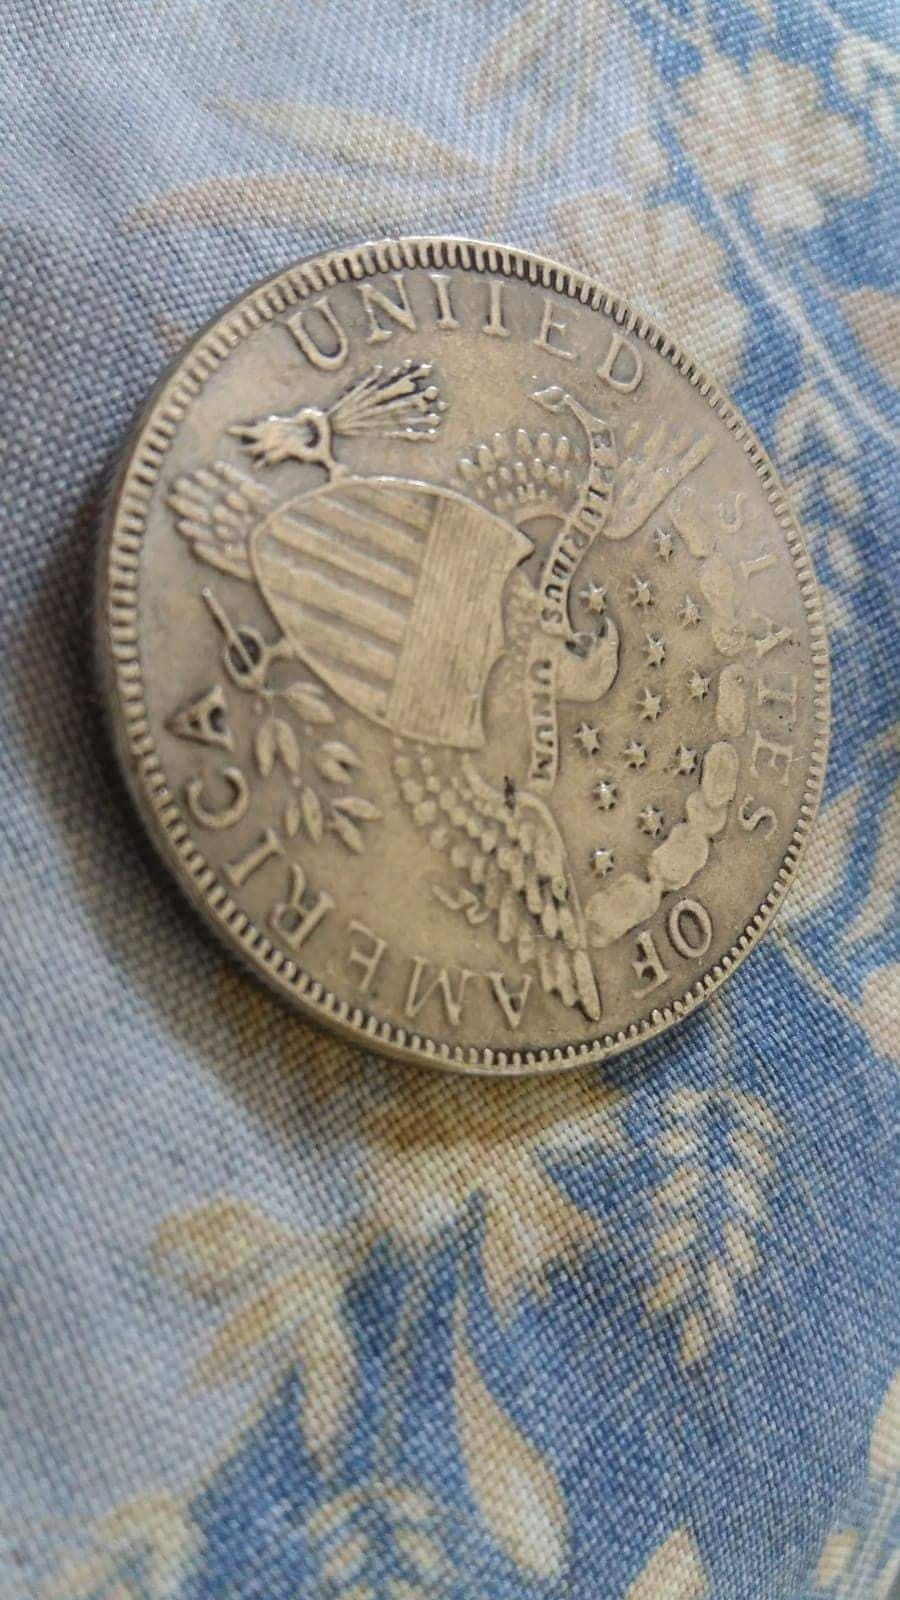 Seriously, Is This a Genuine or a Fake 1804 Silver Dollar